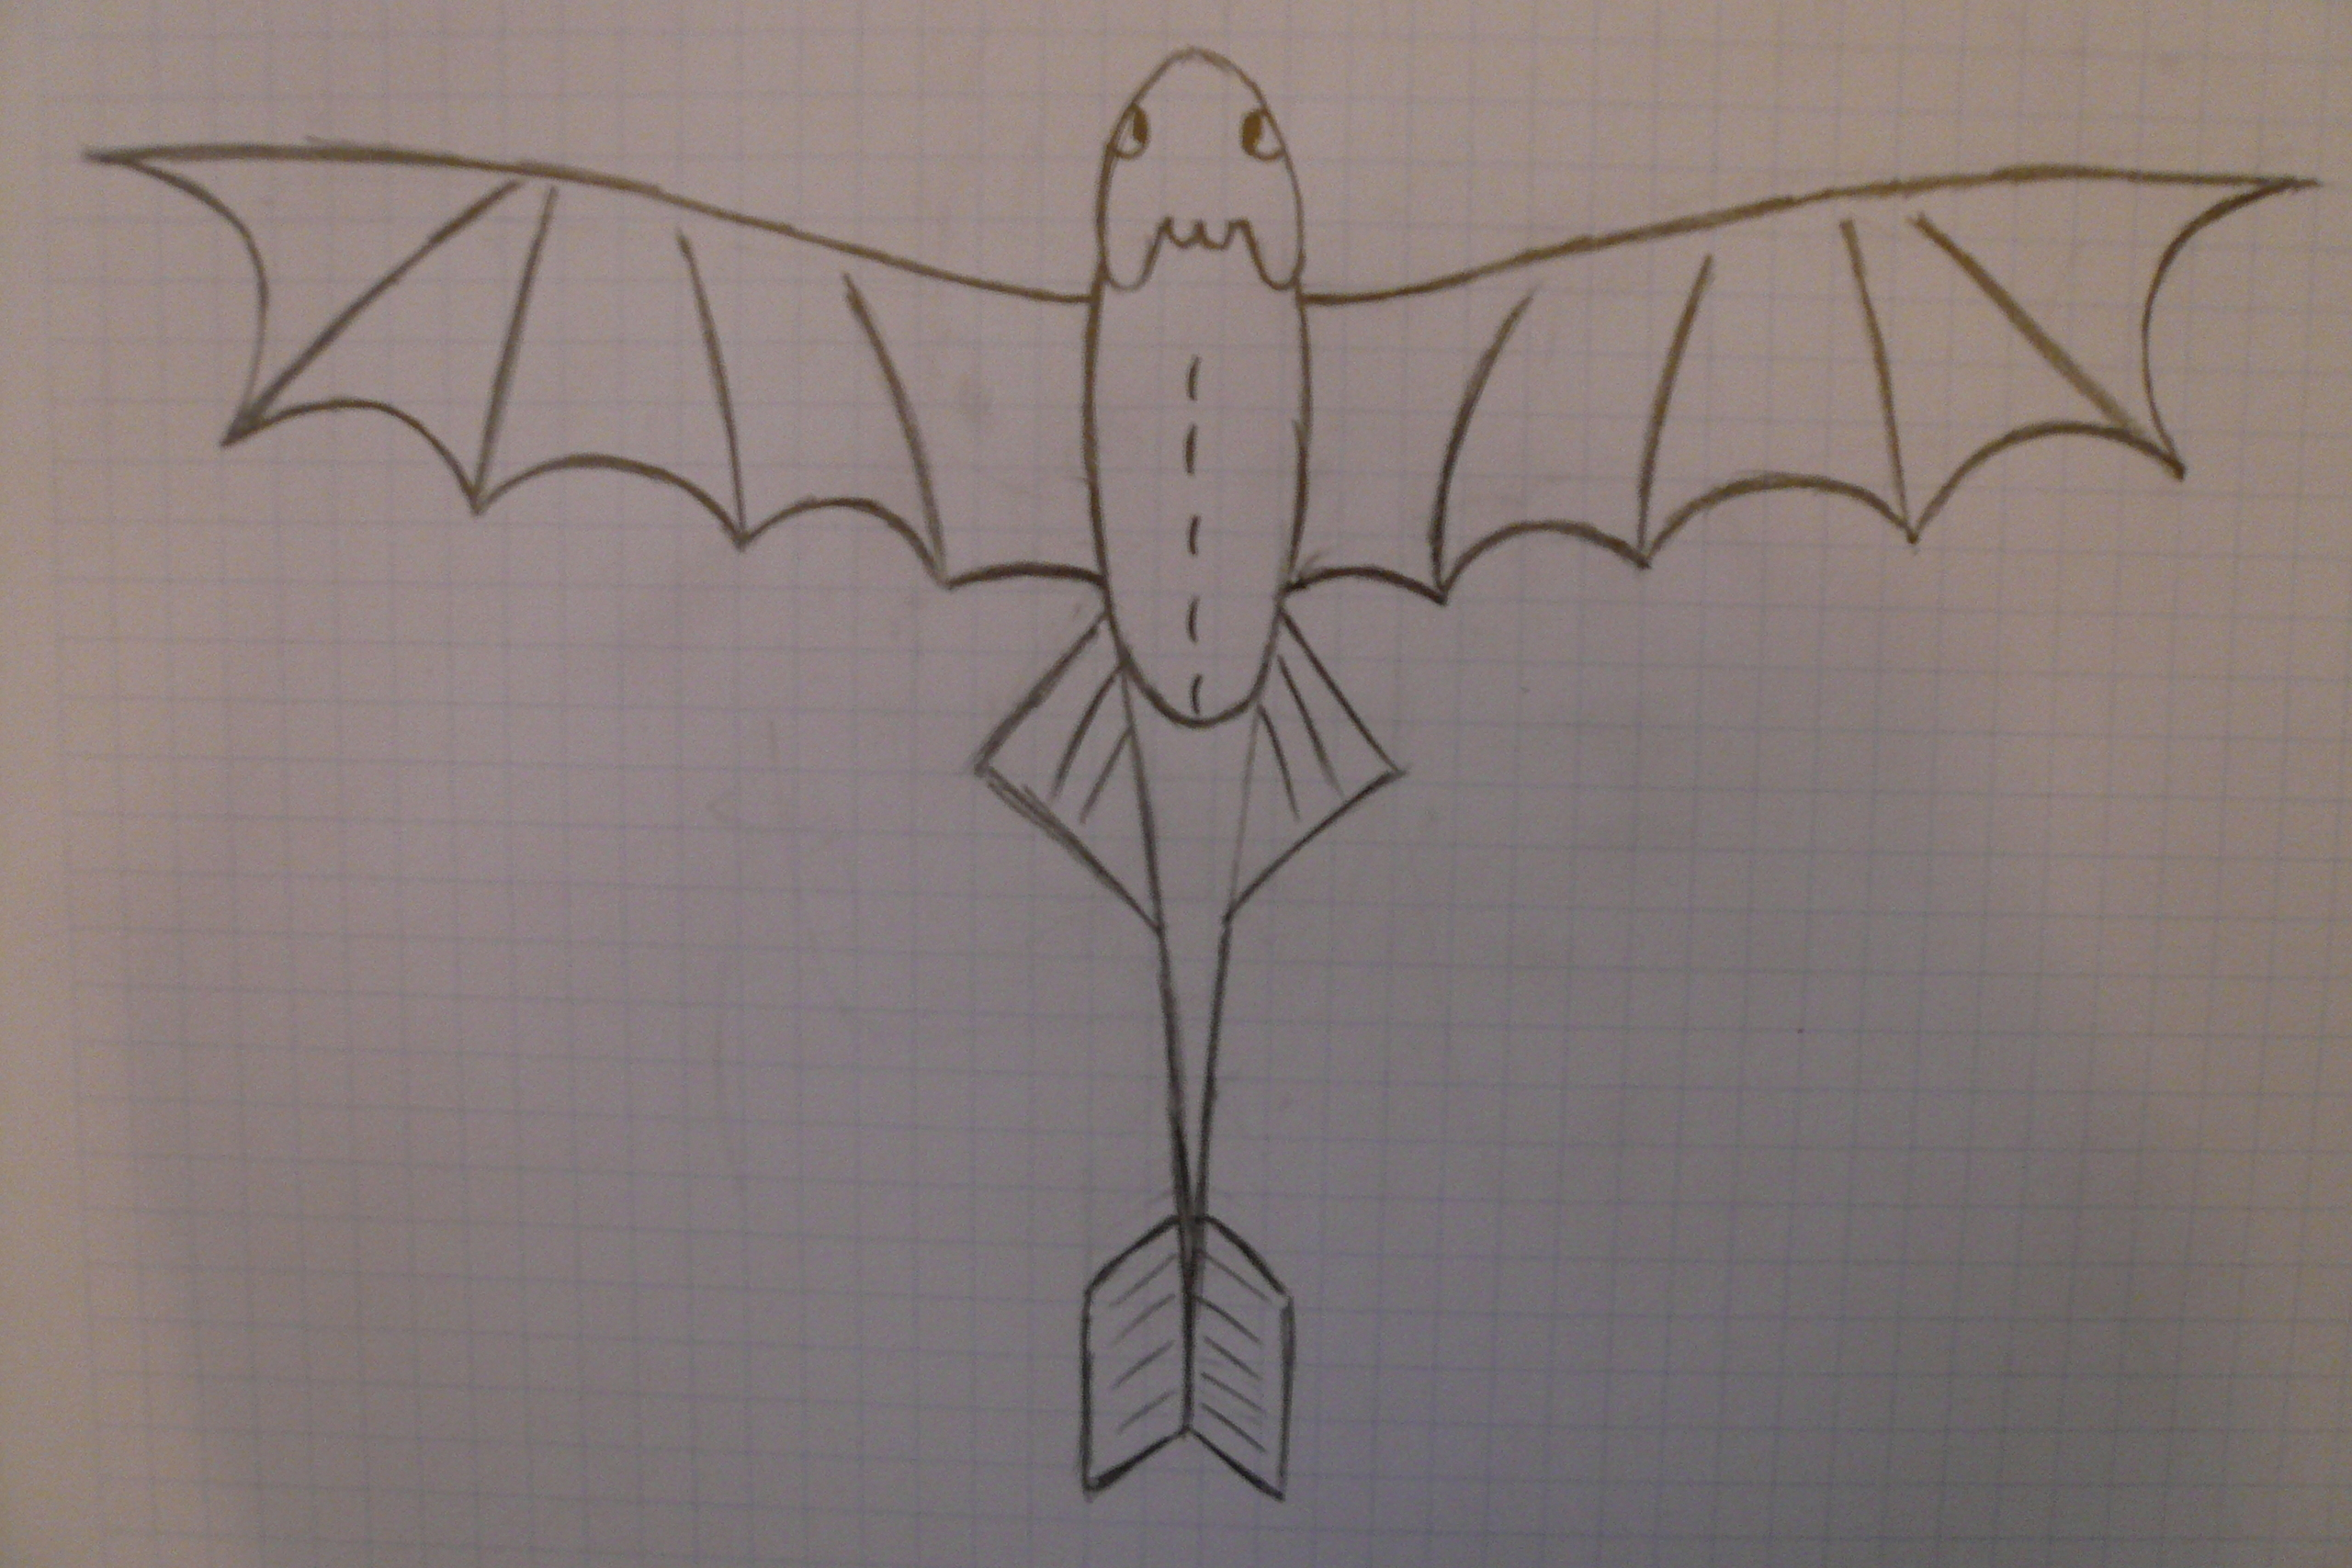 How to Train Your Dragon Picture of night fury that Hiccup drew